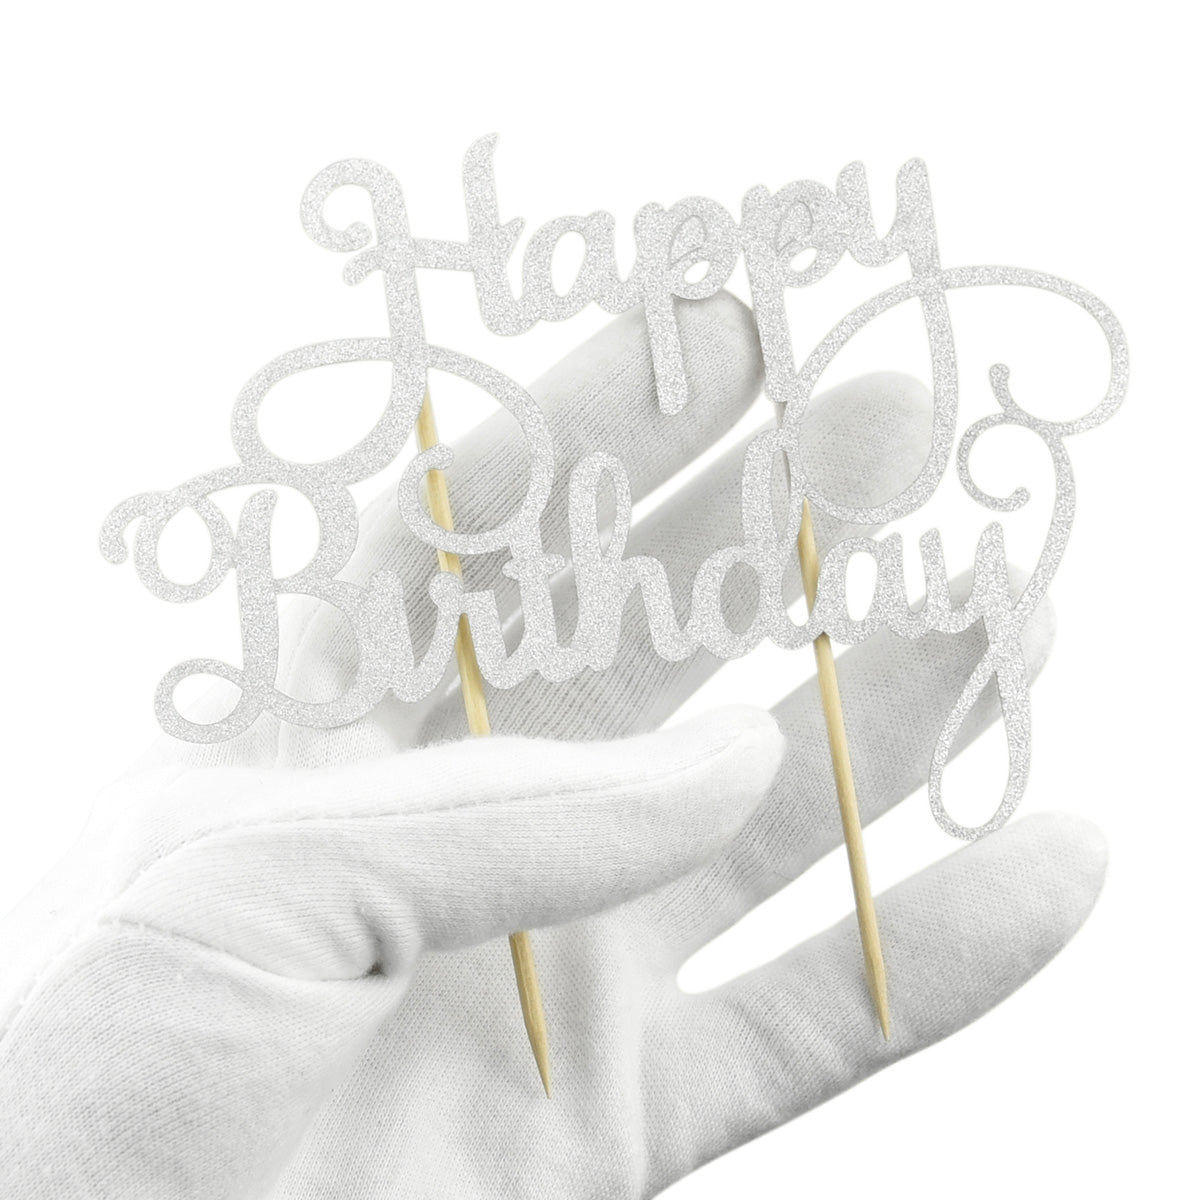 Glitter Silver 'Happy Birthday' Cake Topper with Two Sticks